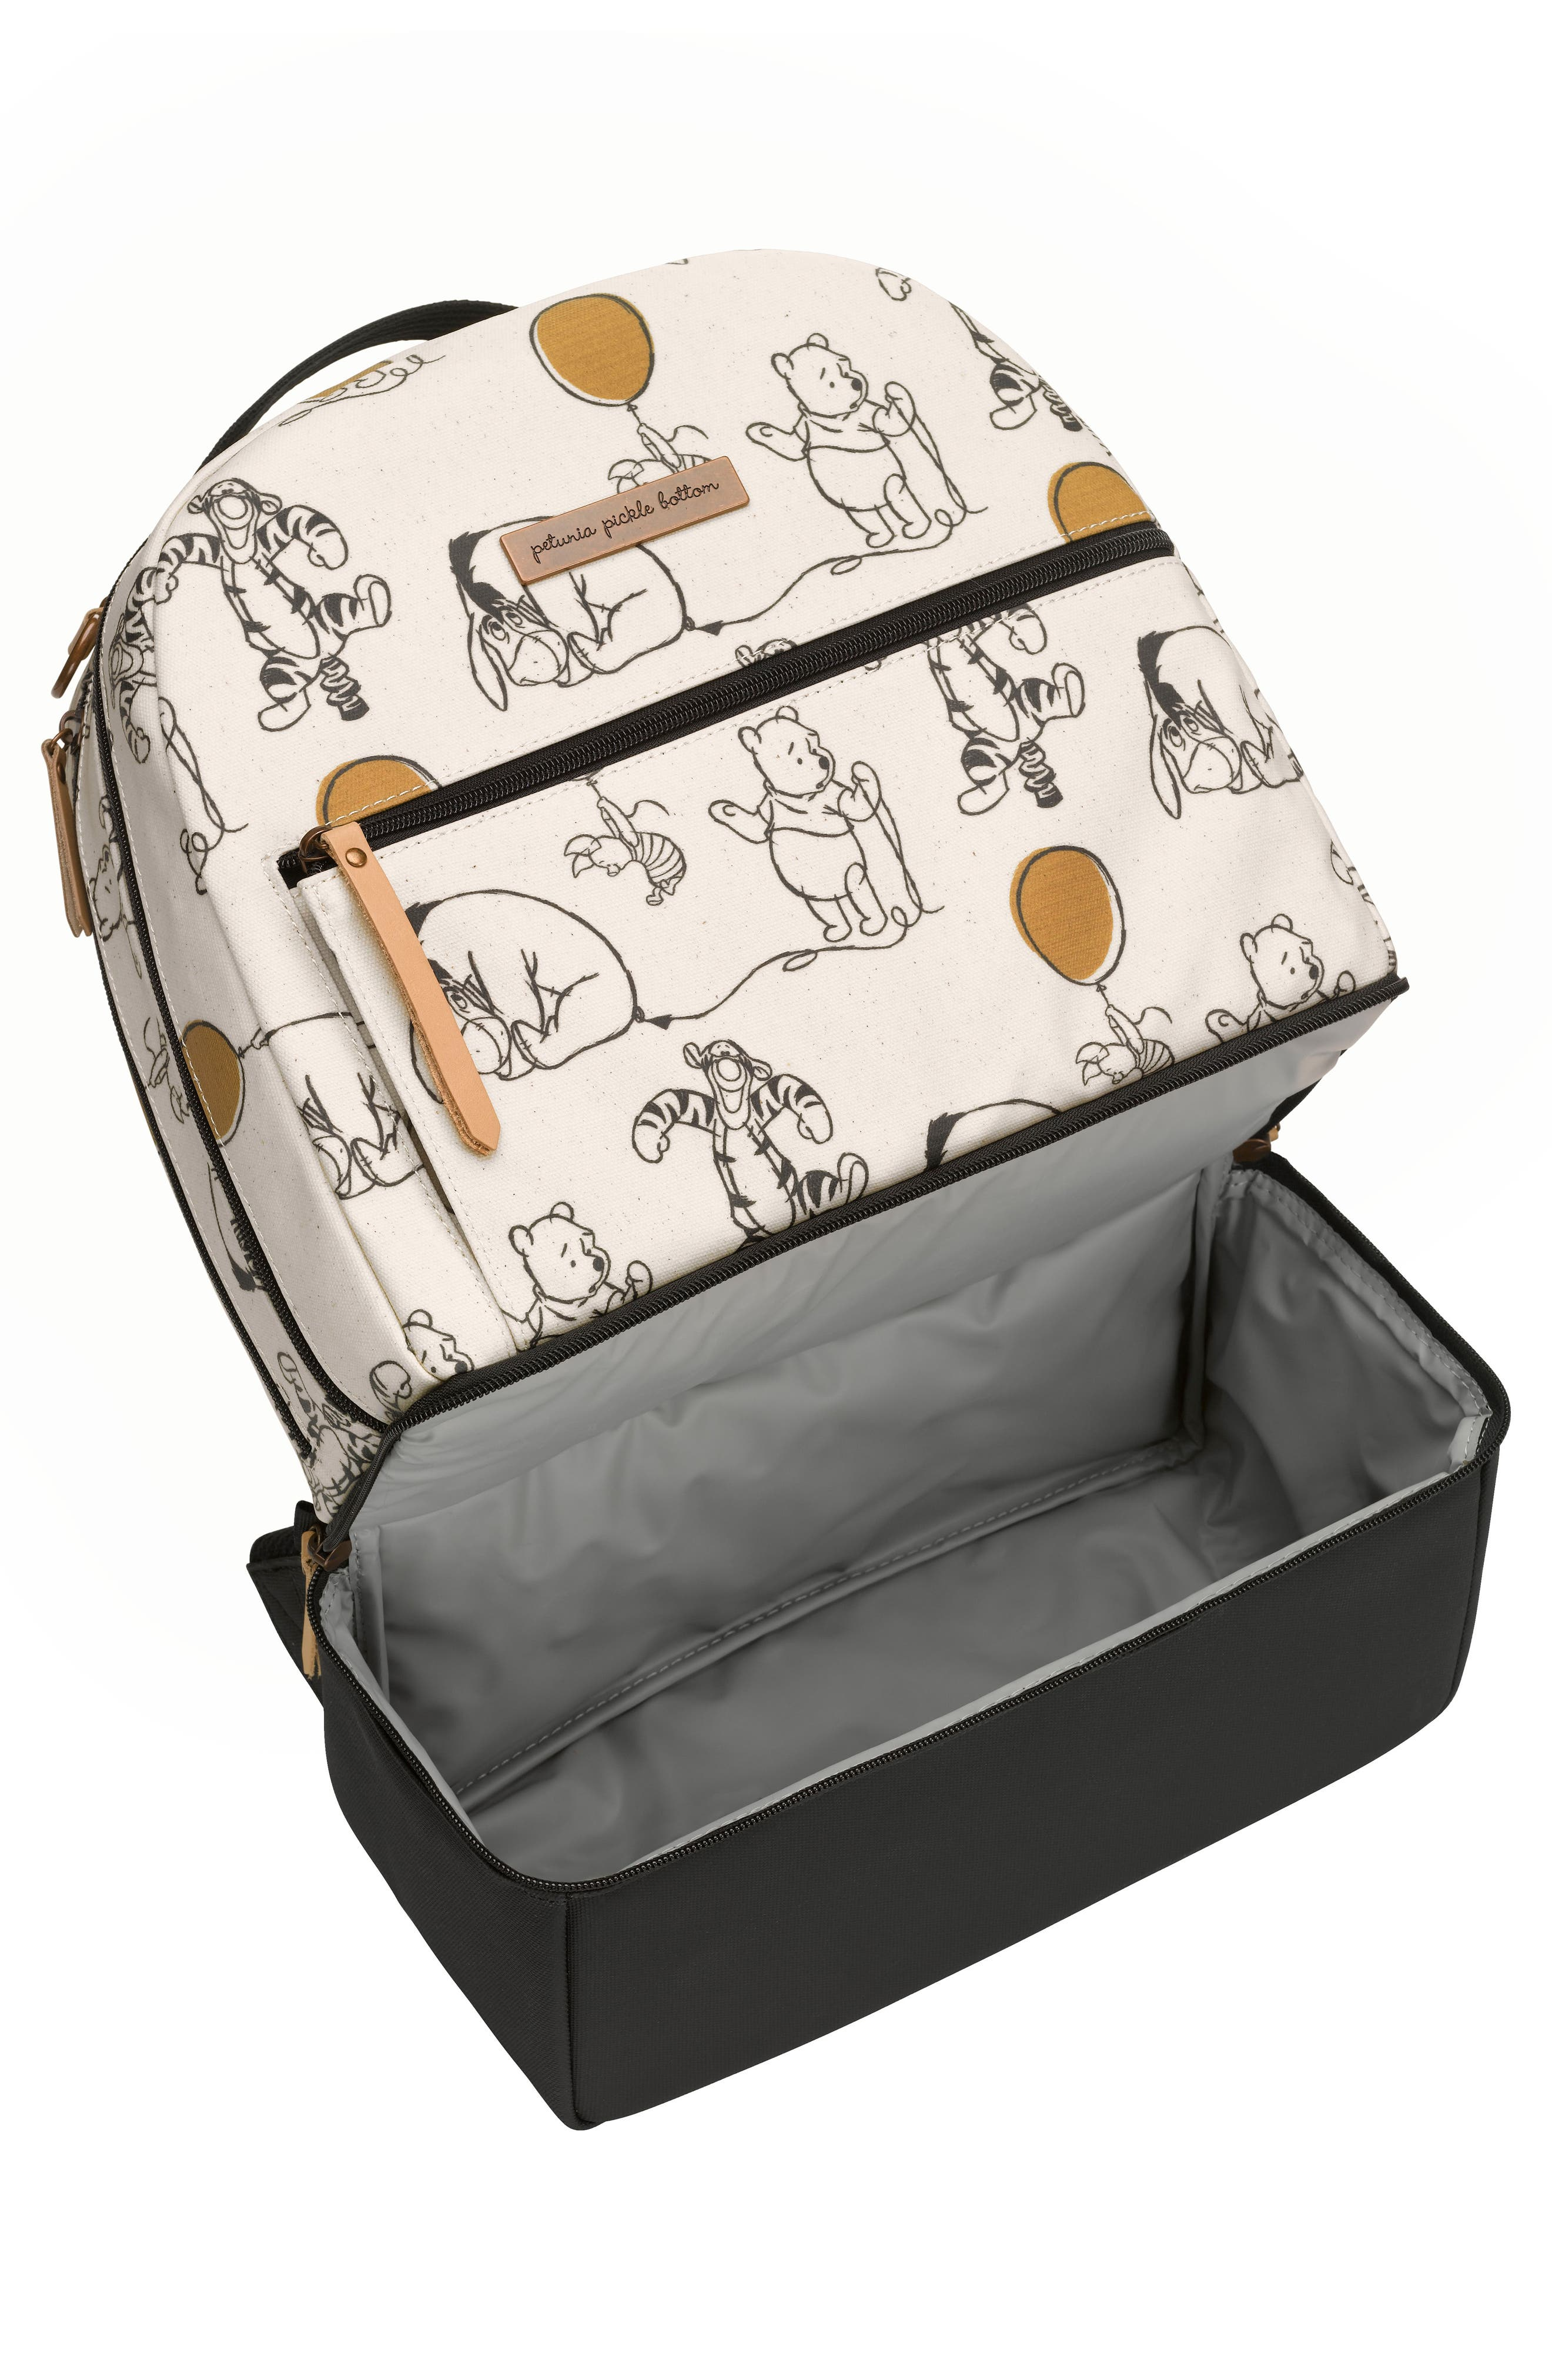 x Disney<sup>®</sup> Axis Backpack,                             Alternate thumbnail 3, color,                             Winnie The Pooh And Friends